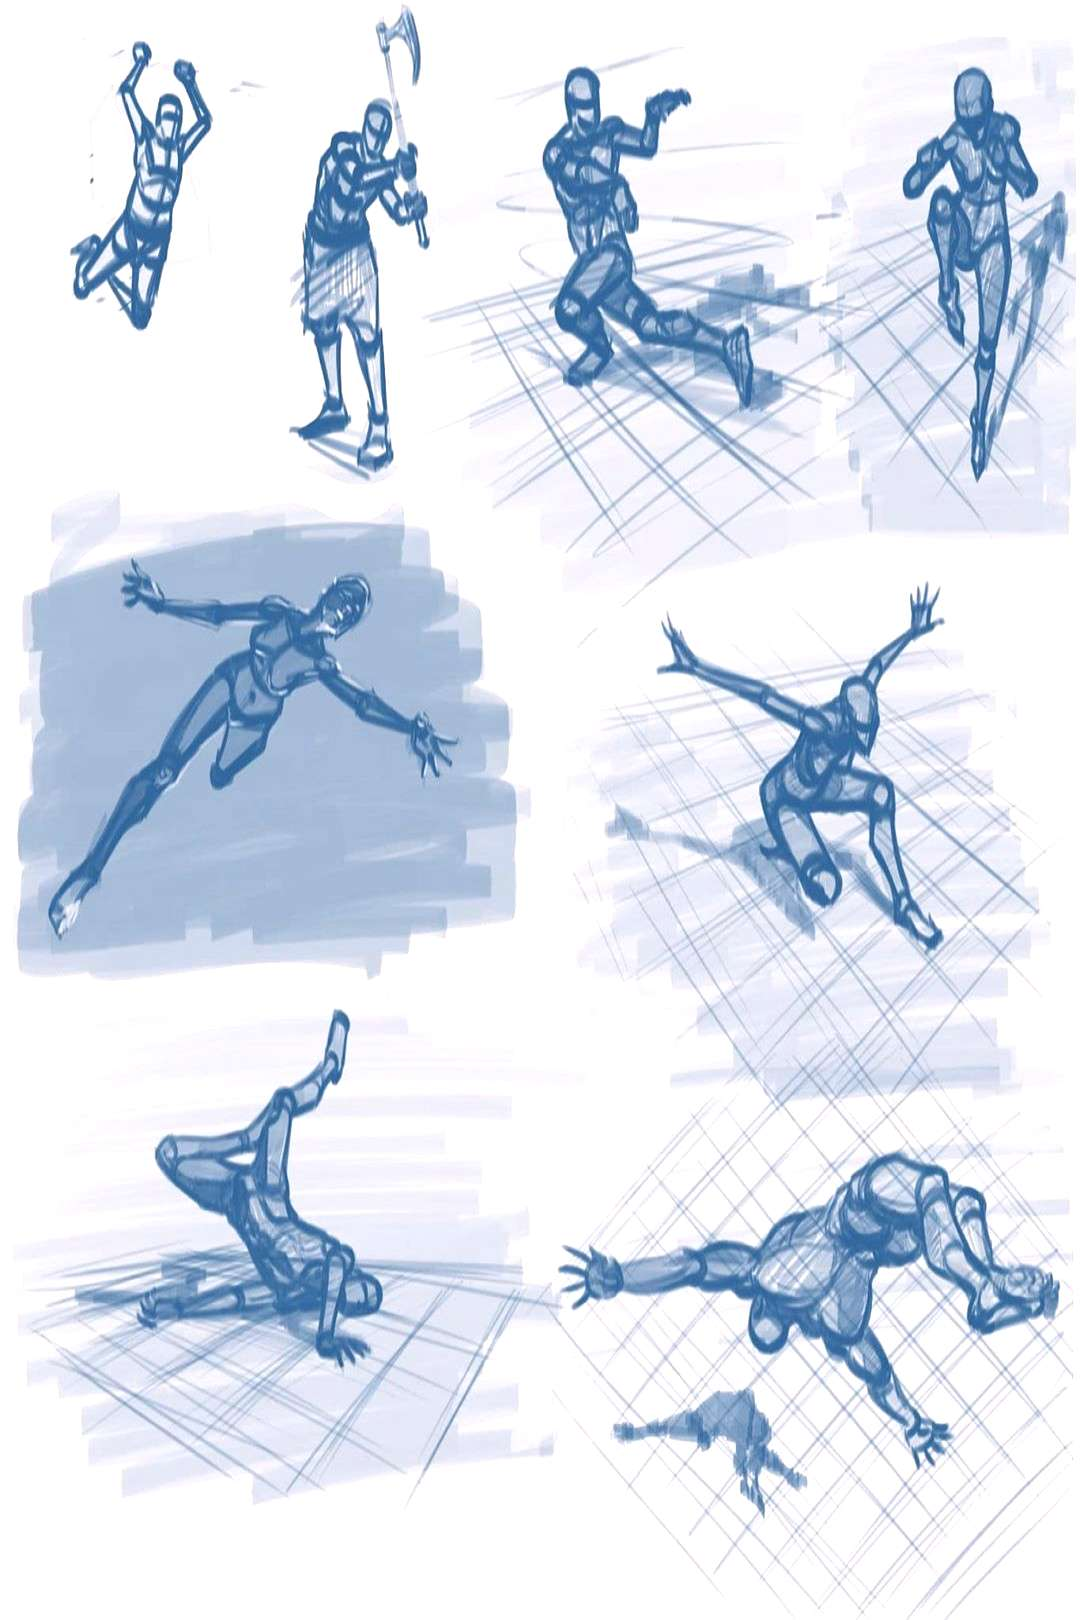 Some late night doodles before bed. #figuredrawing #figure #figur